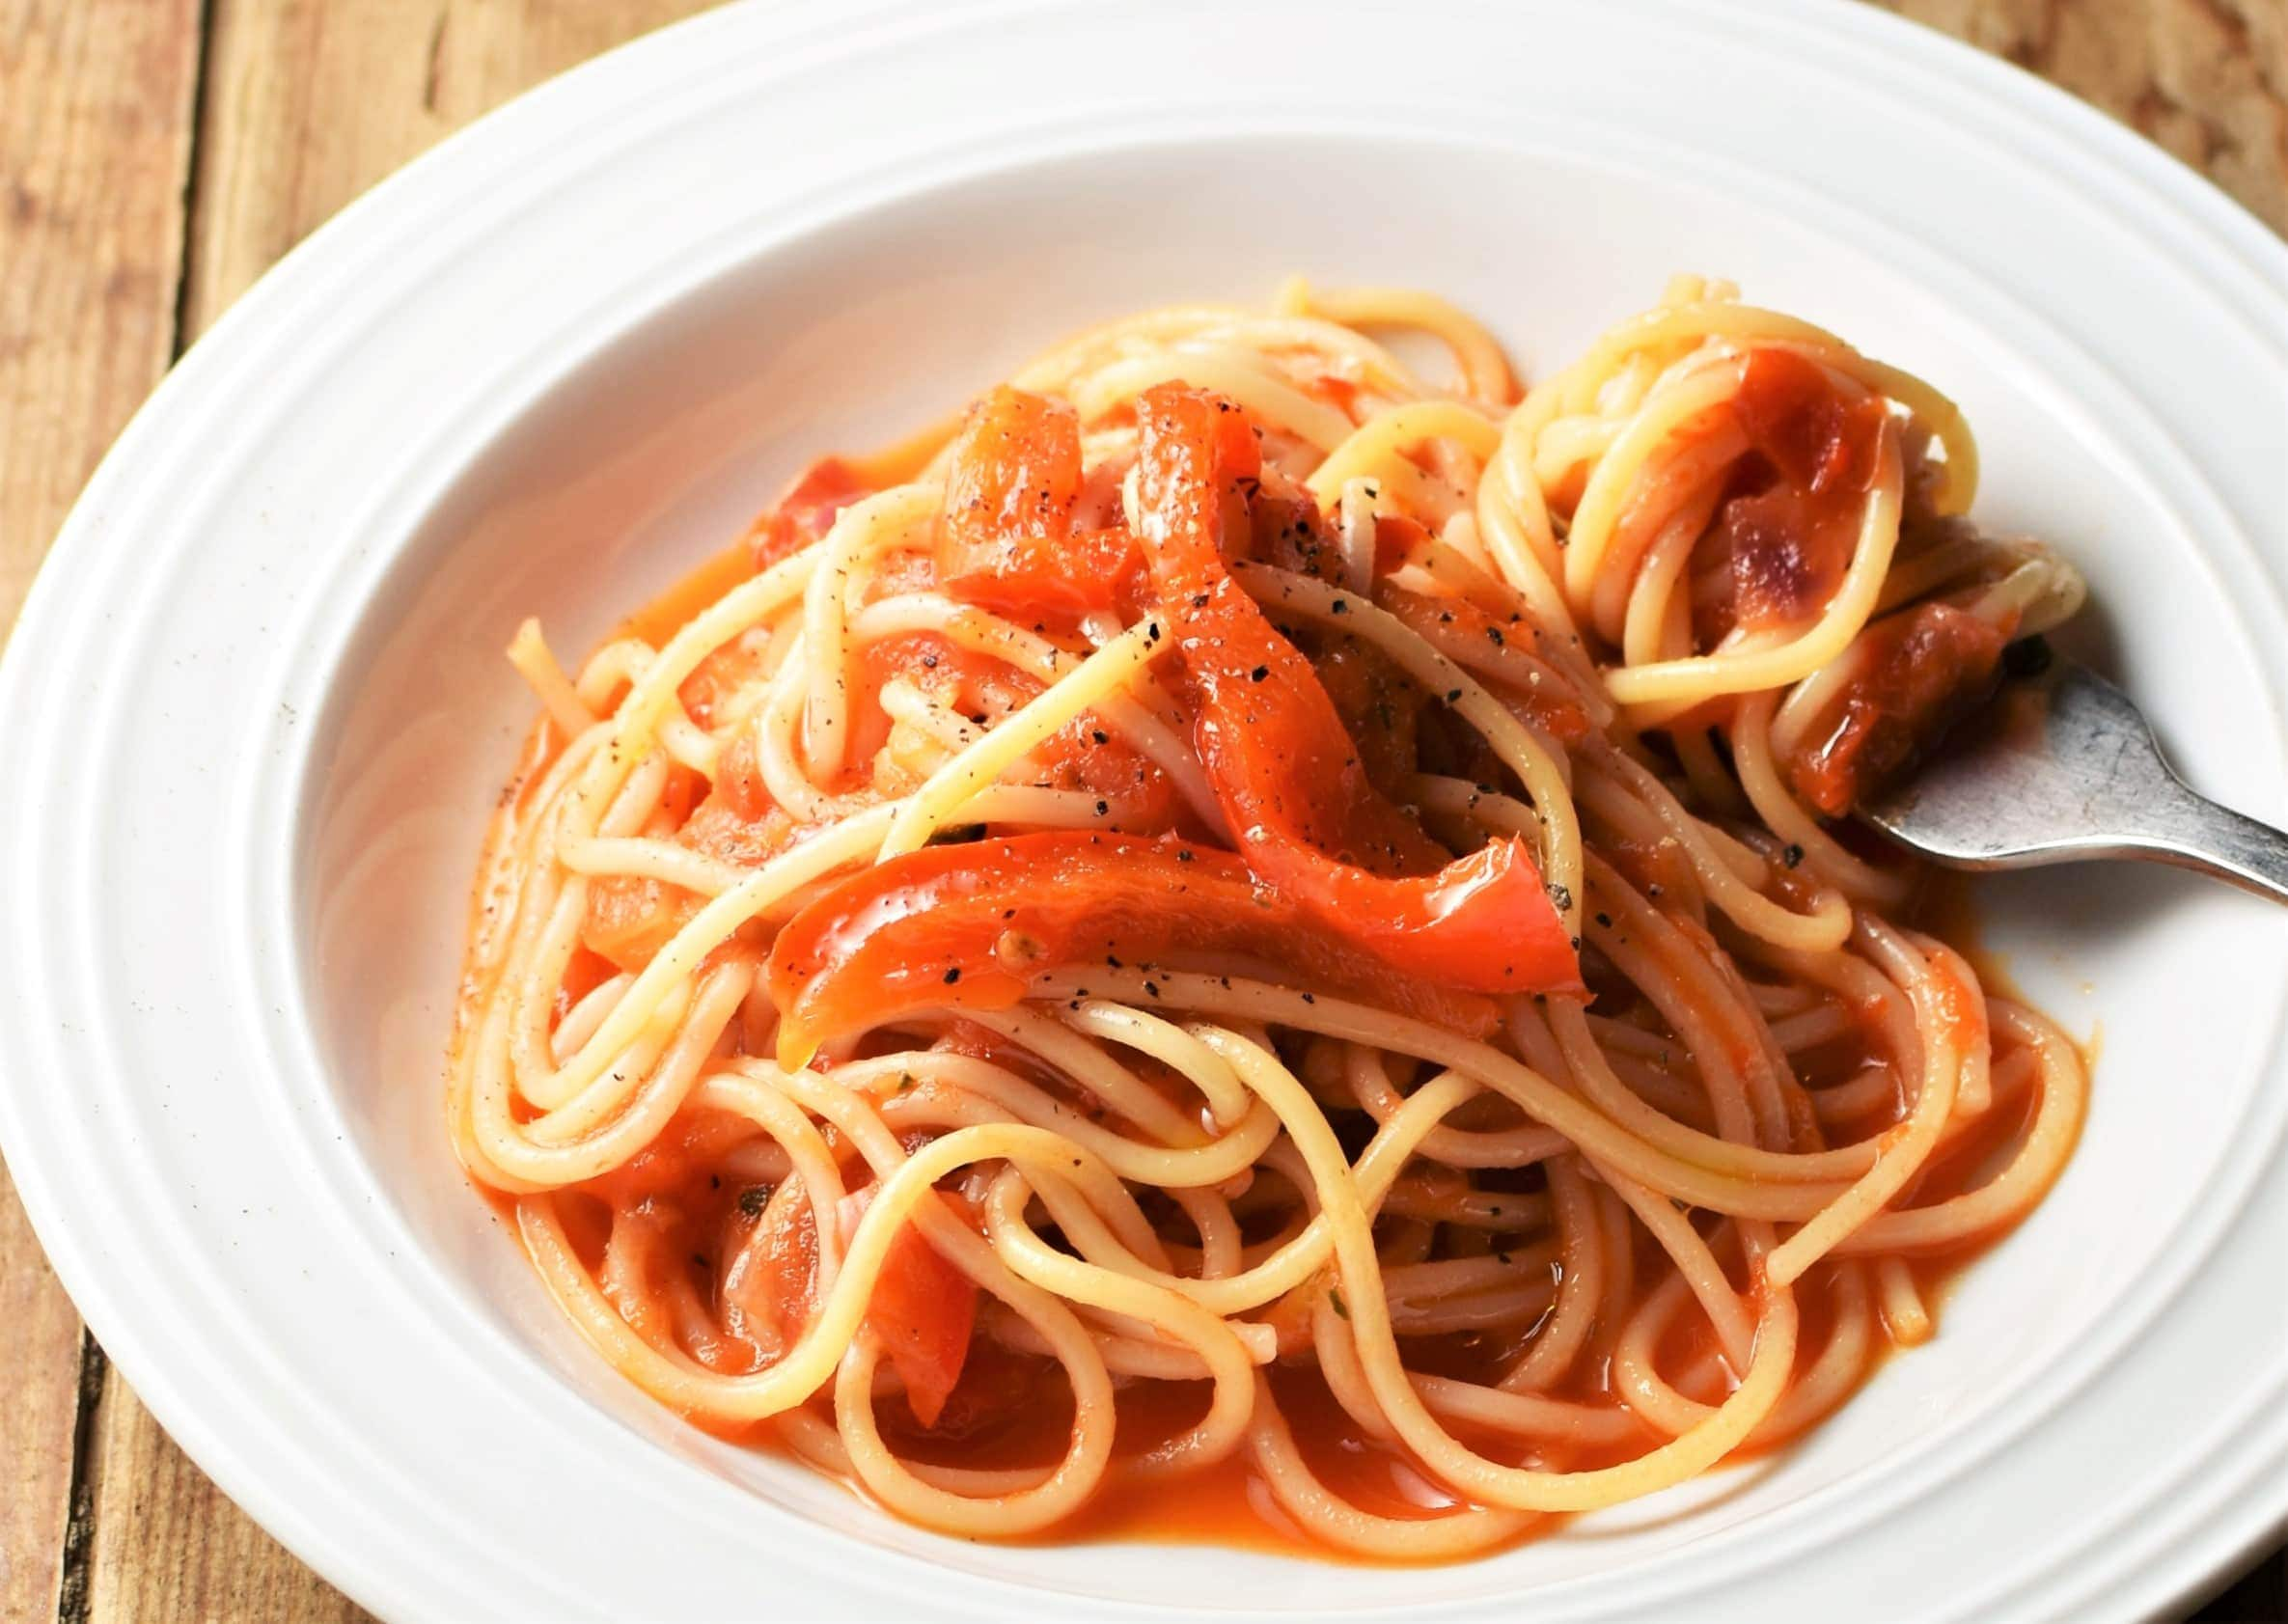 Side view of red pepper pasta with tomato sauce on white plate with fork.